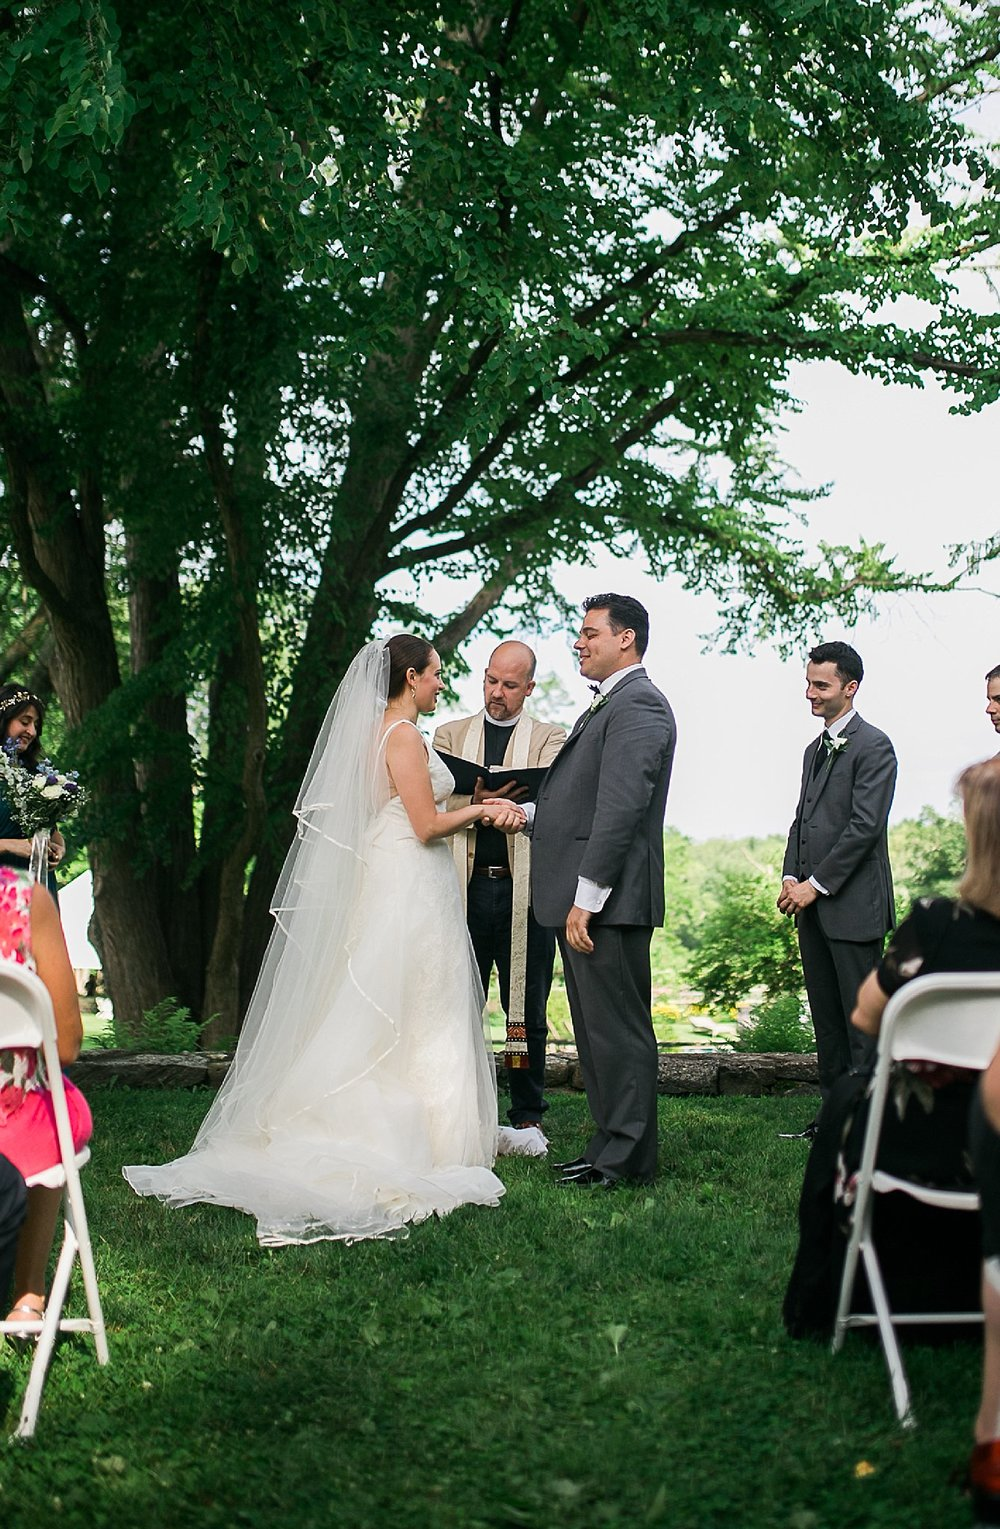 Mount Kisco Backyard Wedding Hudson Valley Photographer Sweet Alice Photography37.jpg